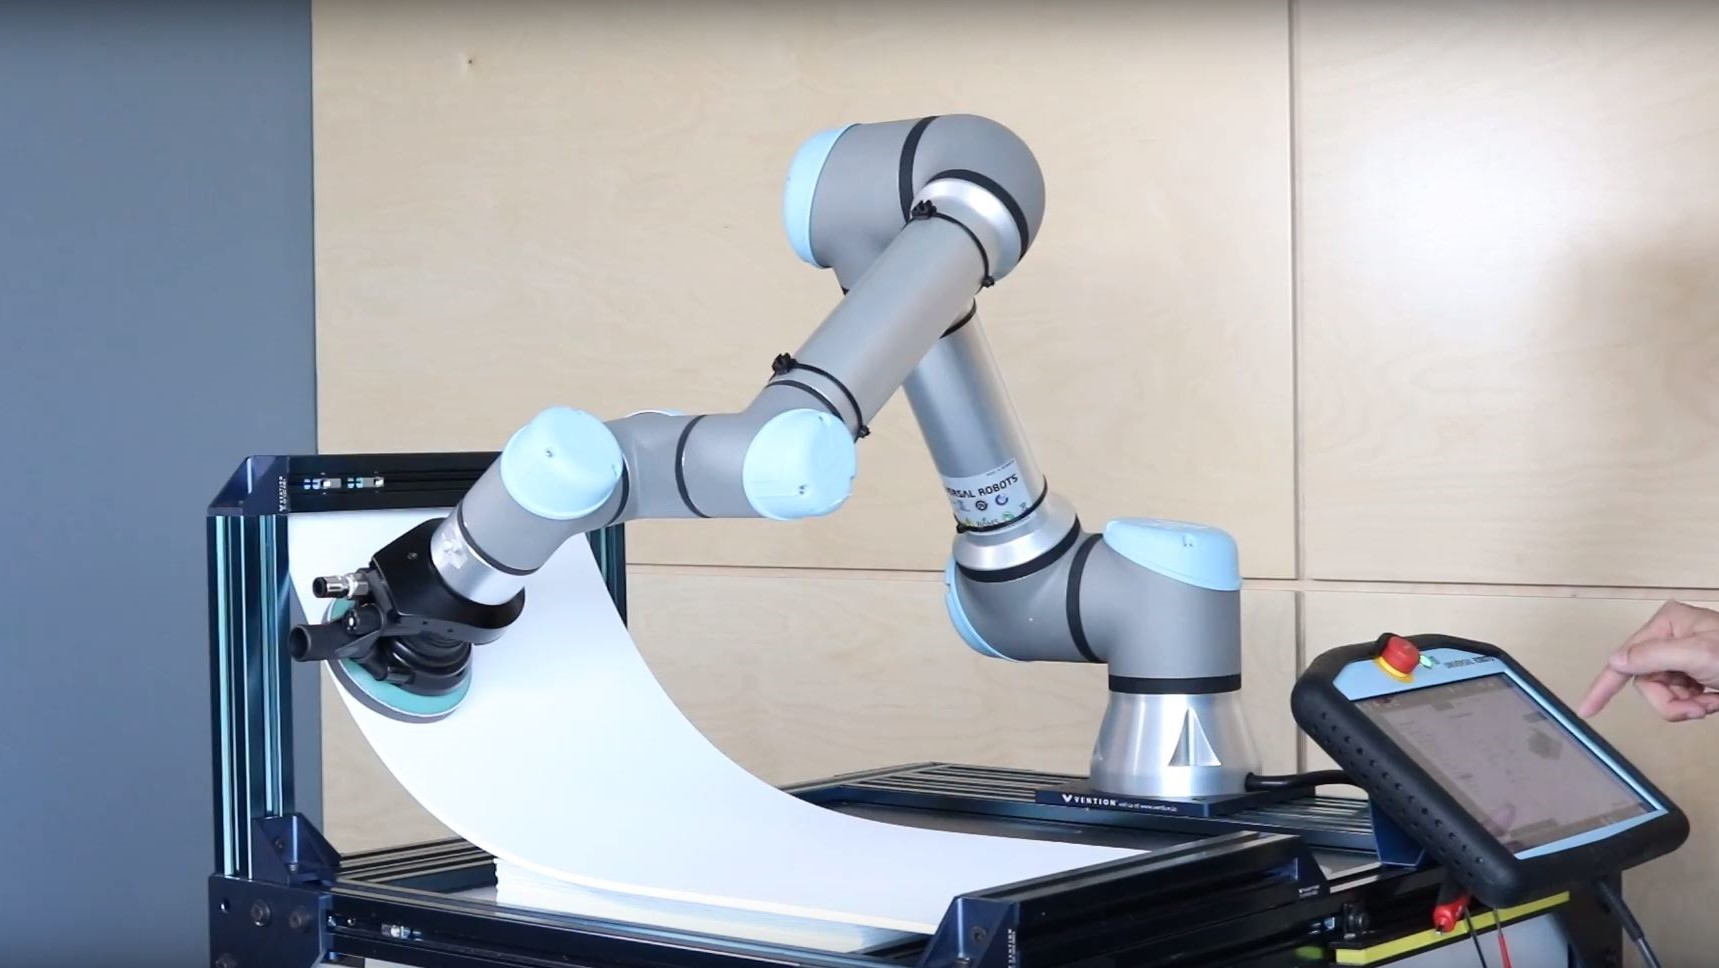 5 Questions to Ask Yourself Before Using Robot Finishing